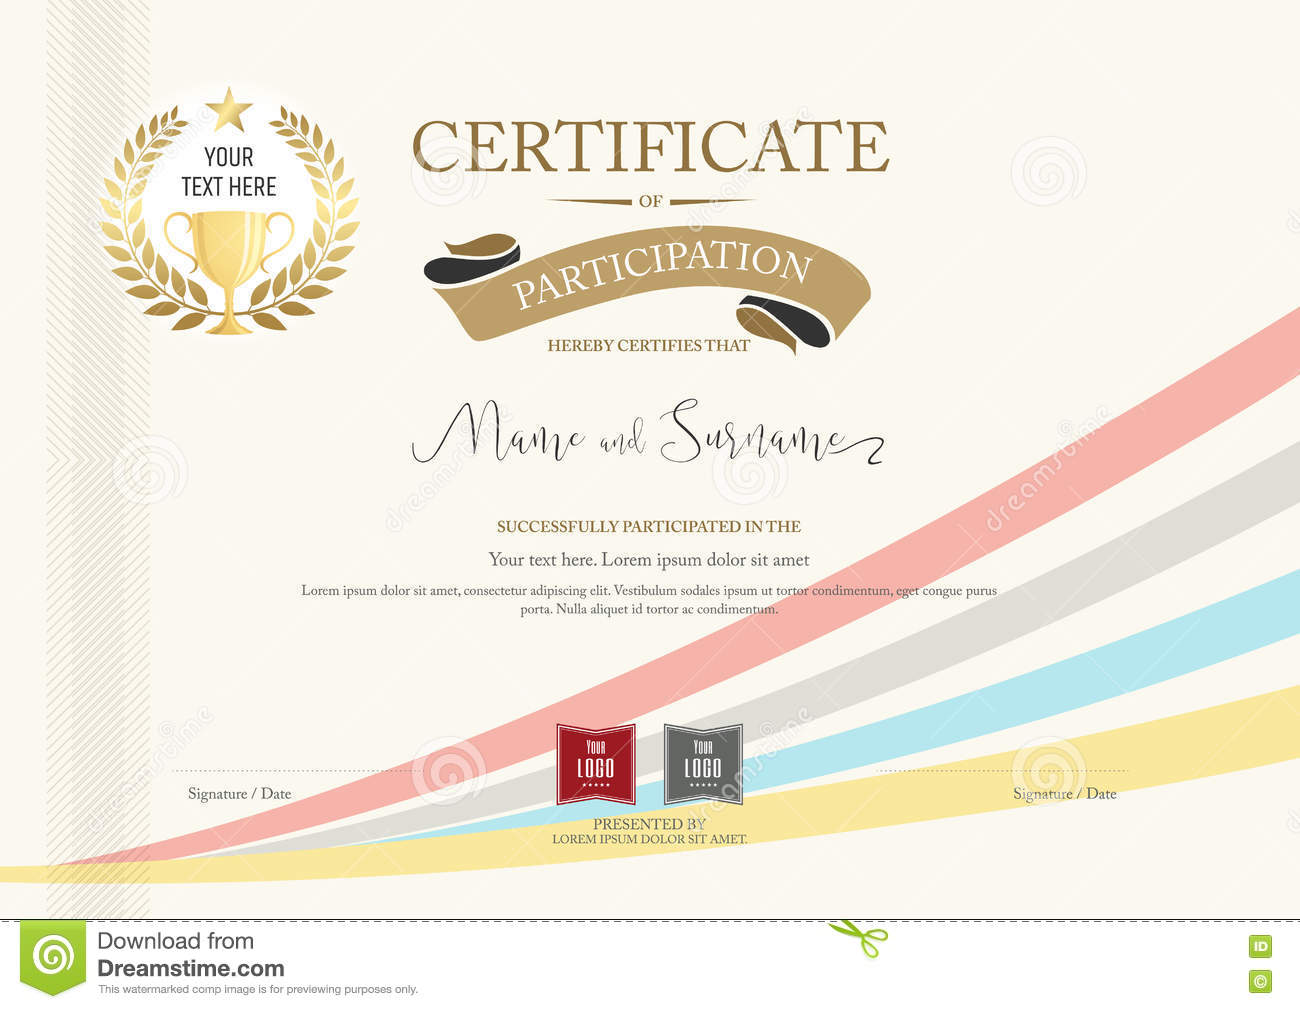 Certificate Of Participation Template With Golden Award Laurel Illustration  79633039   Megapixl  Certificate Of Participation Template